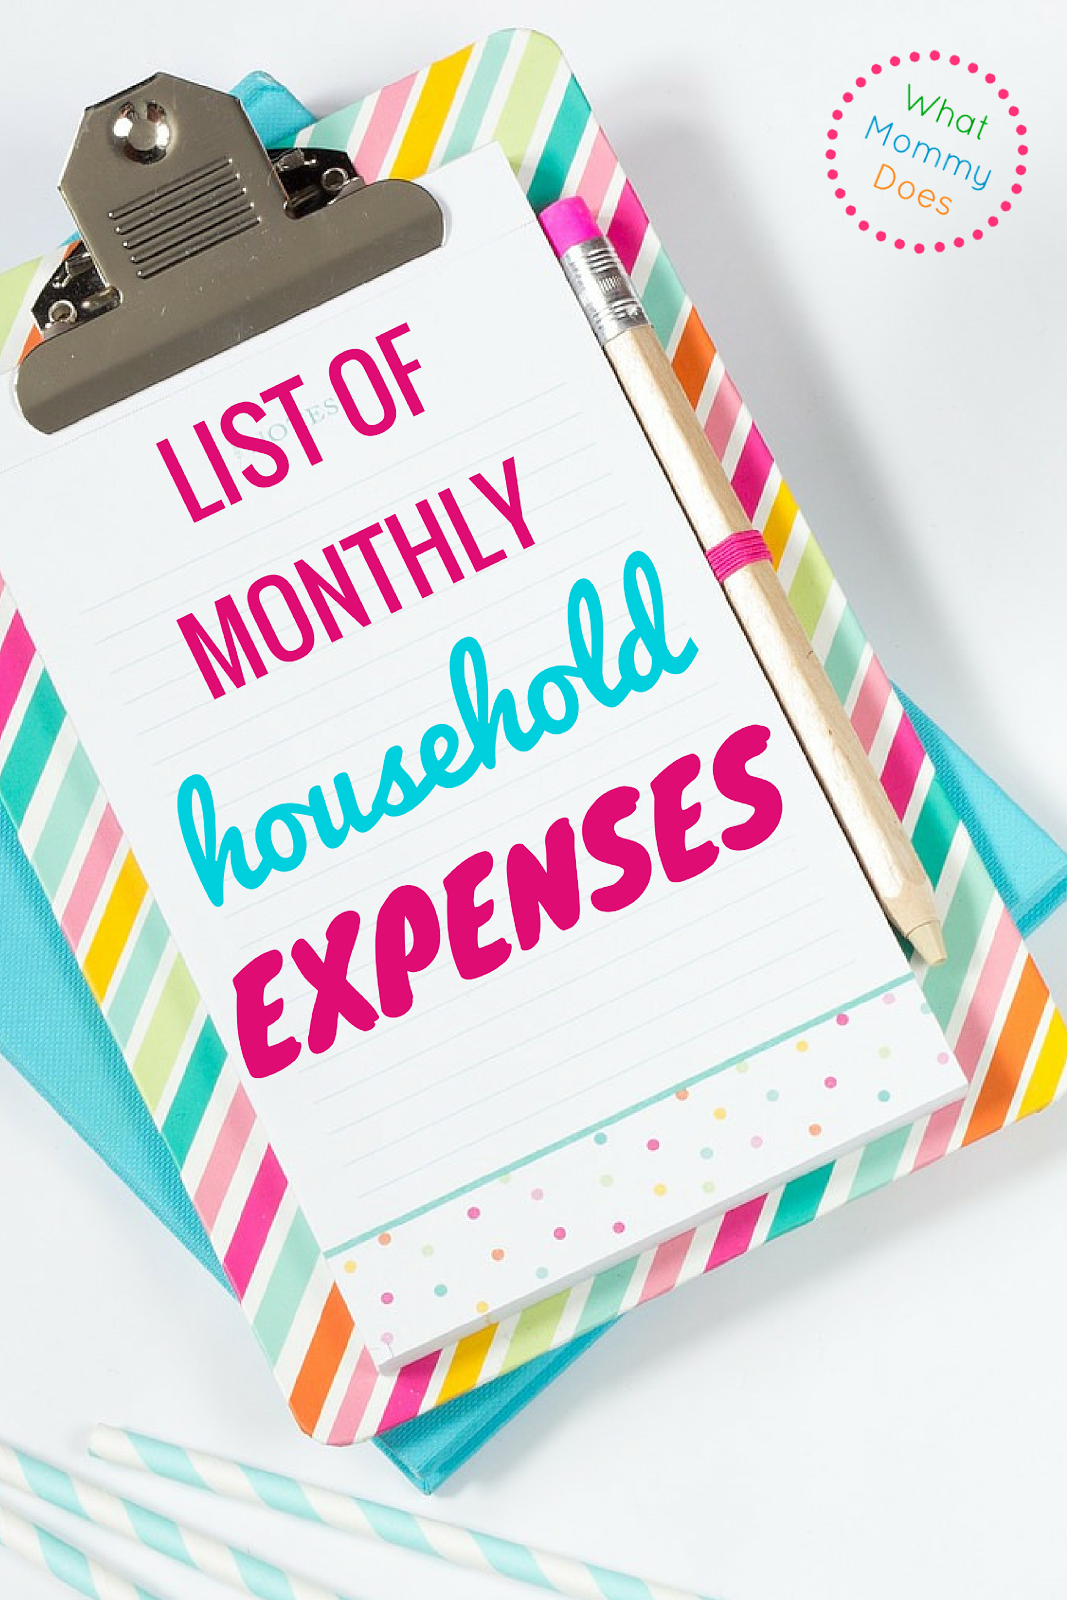 Read this monthly expenses list so you will be able to create budget that saves money for your family!